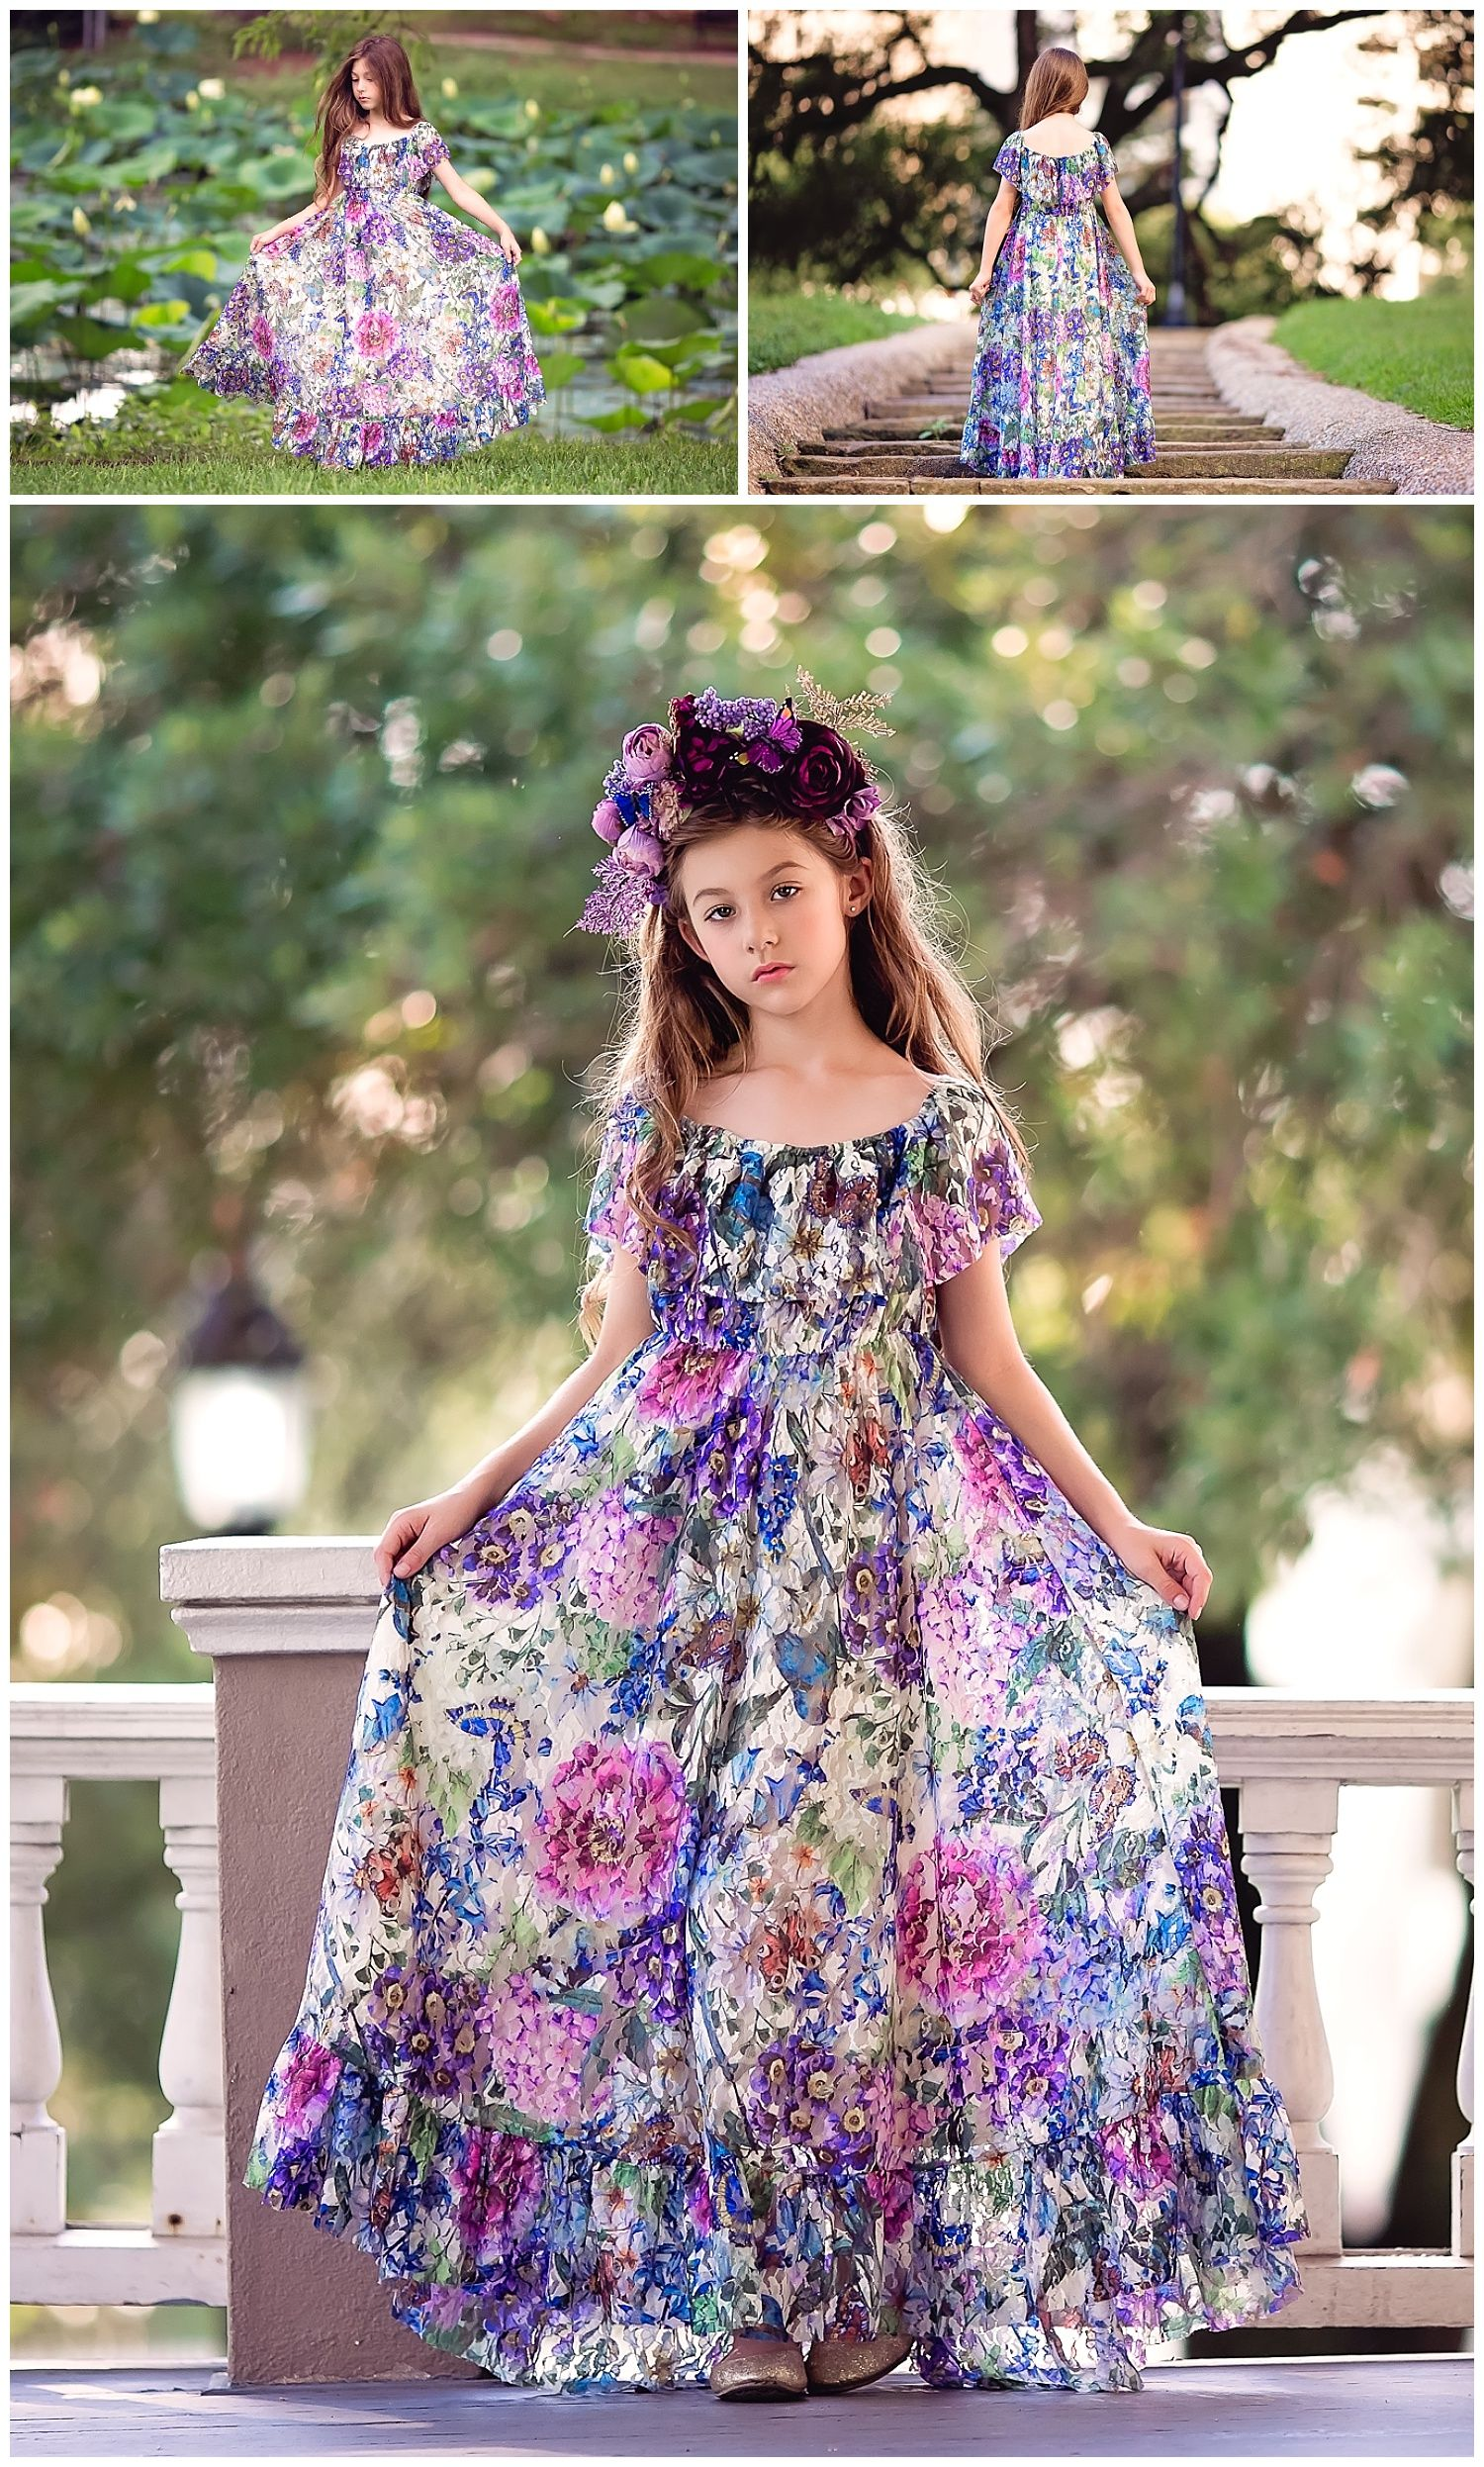 f4a0d88e7 Stunning bohemian chic floral lace maxi dress for girls. For a flower girl  dress or boho inspired photoshoot.